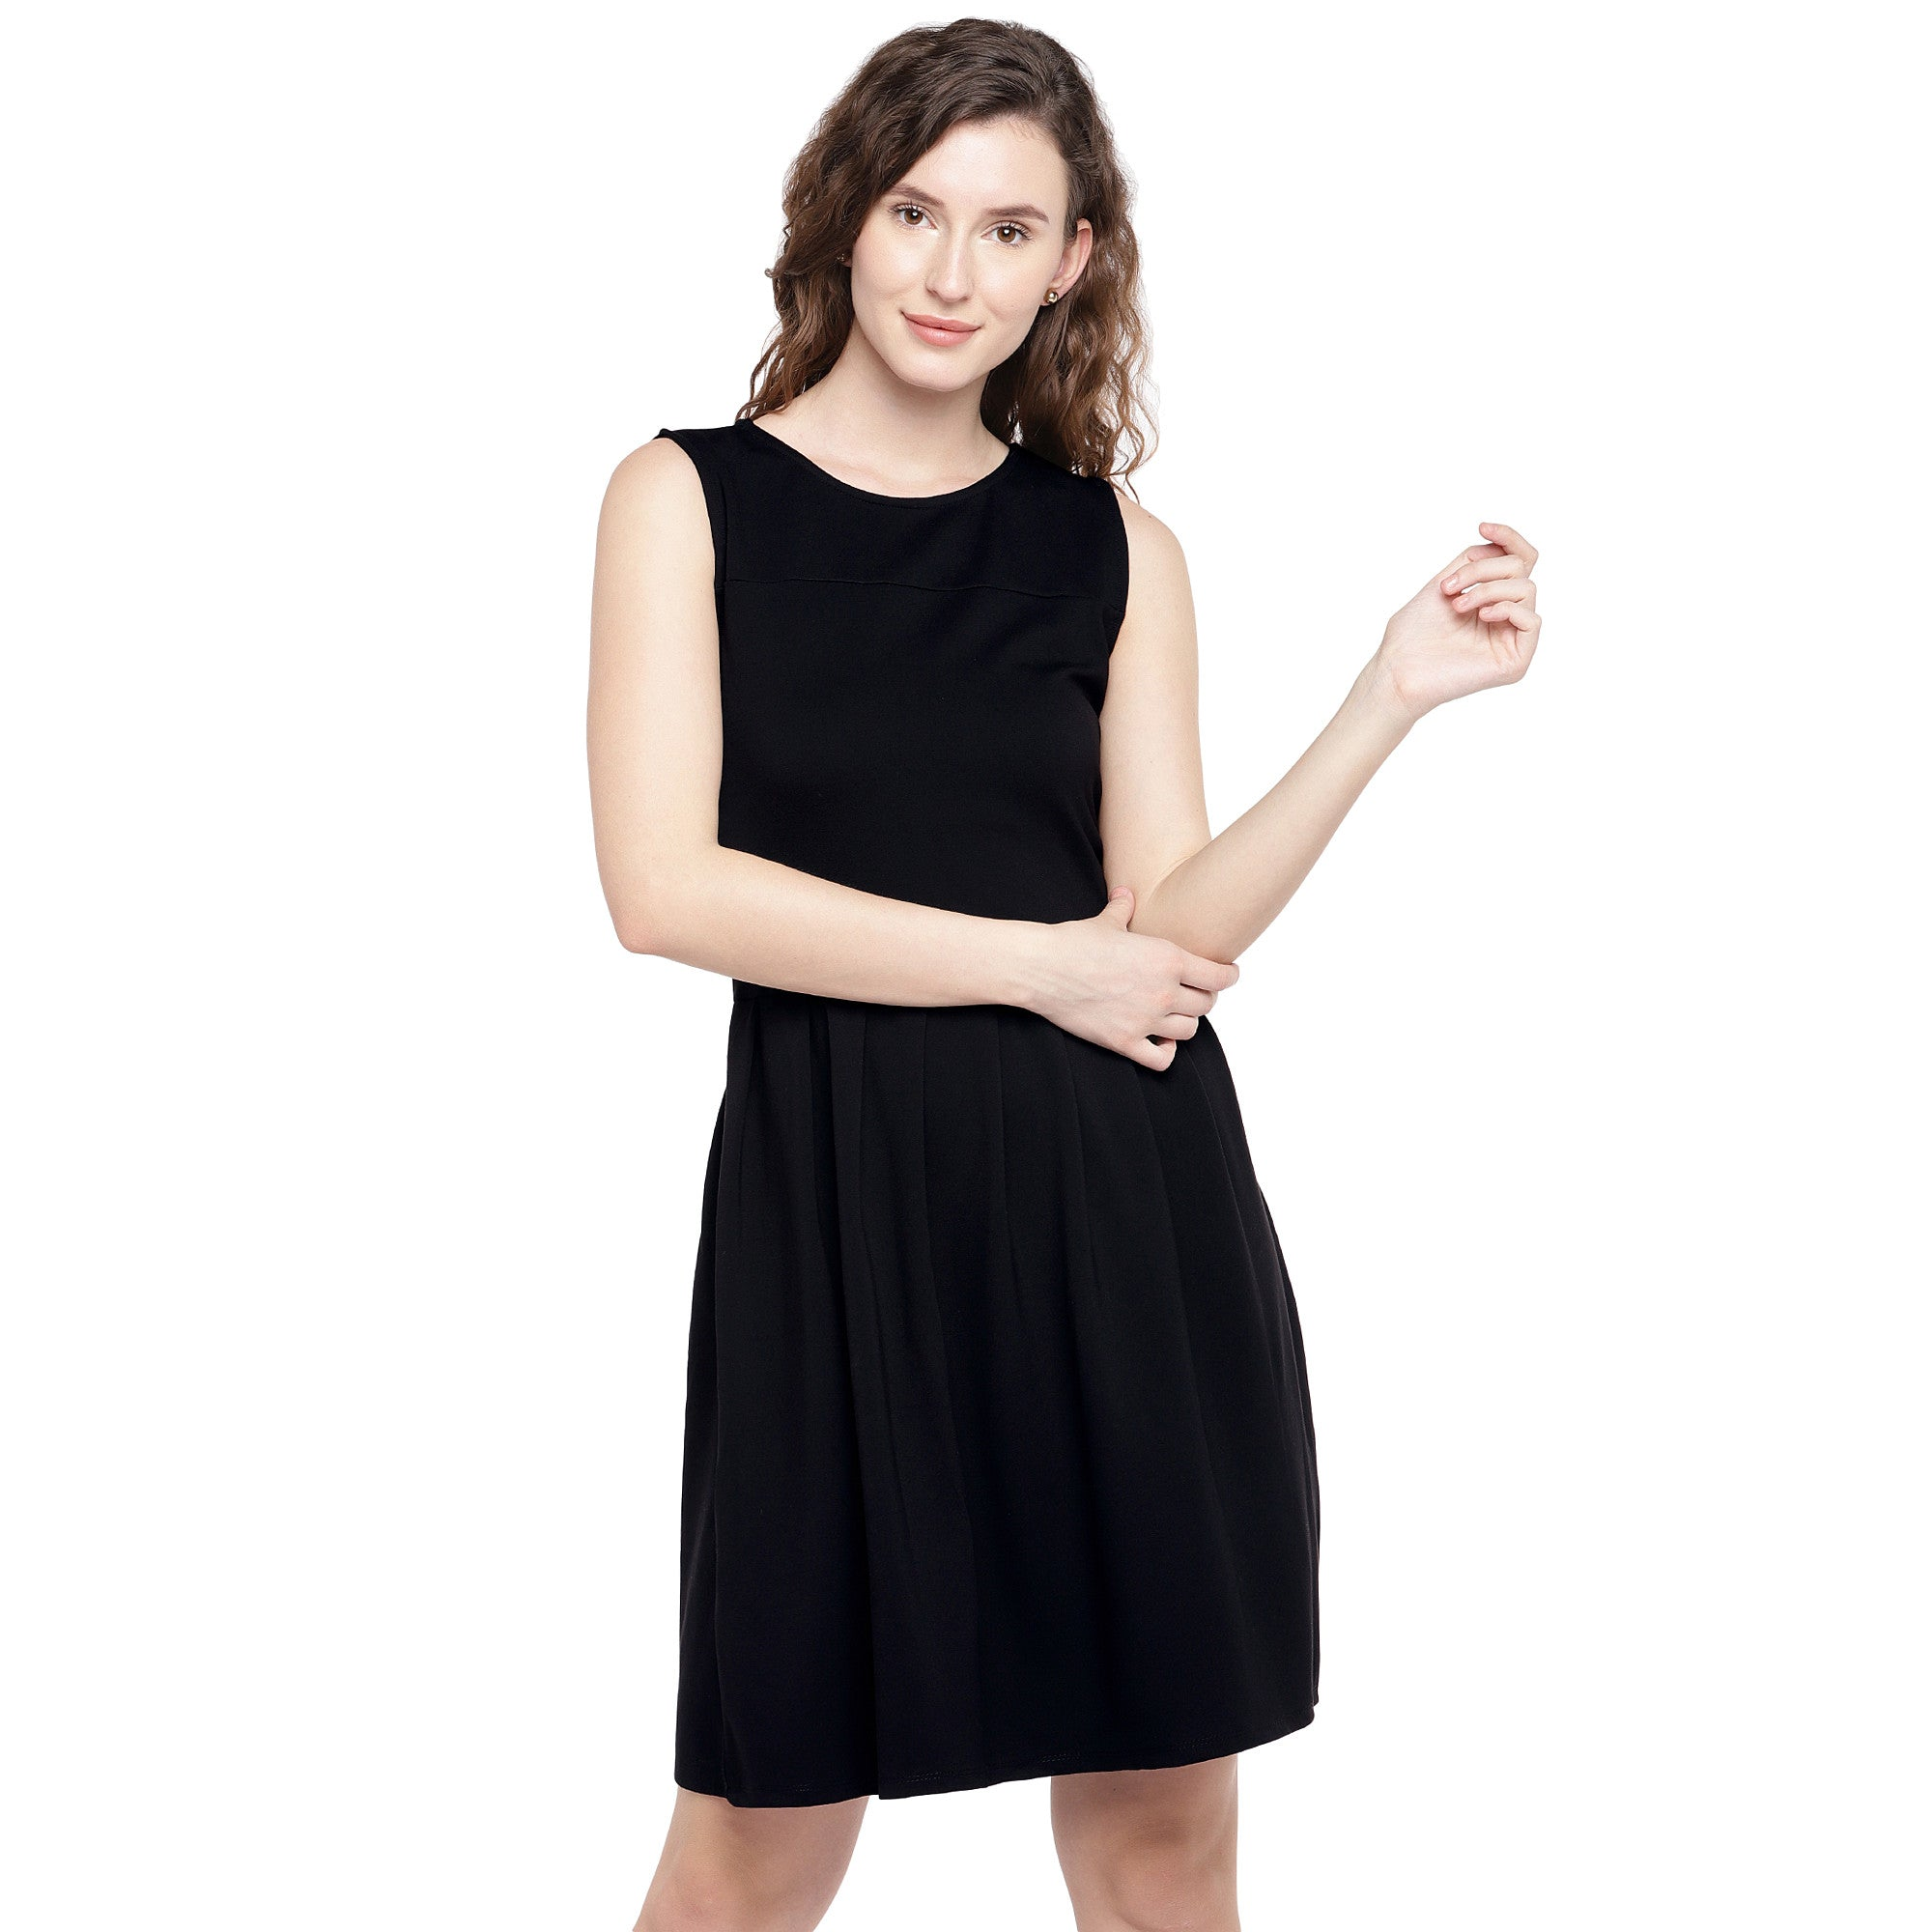 Women Black Solid A-Line Dress-1